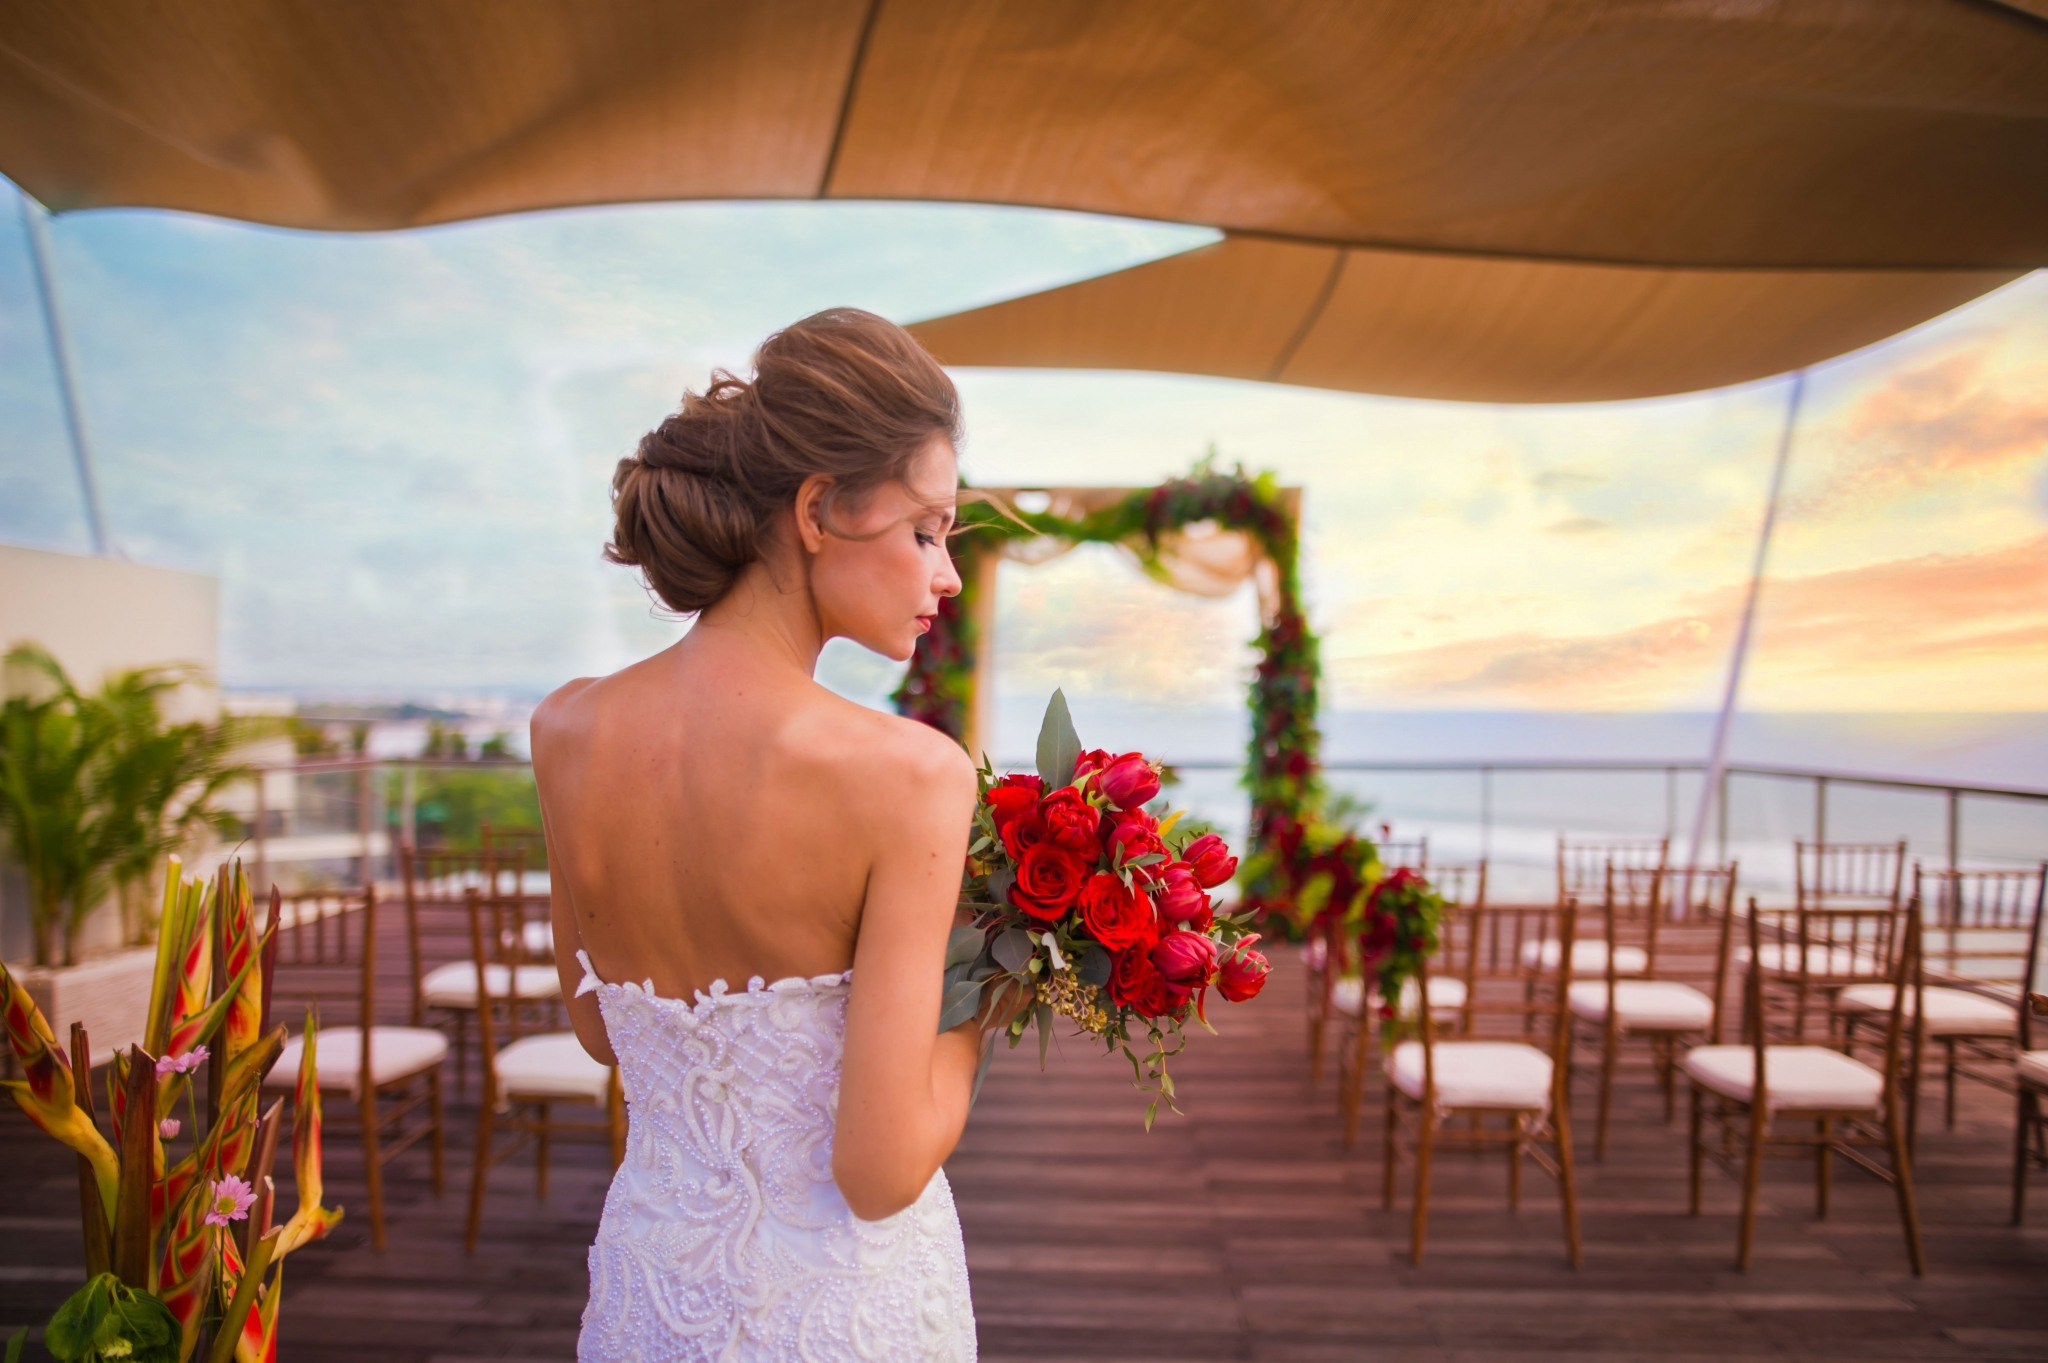 Rooftop Sky Wedding at Bene's Rooftop | Sheraton Bali Kuta Resort